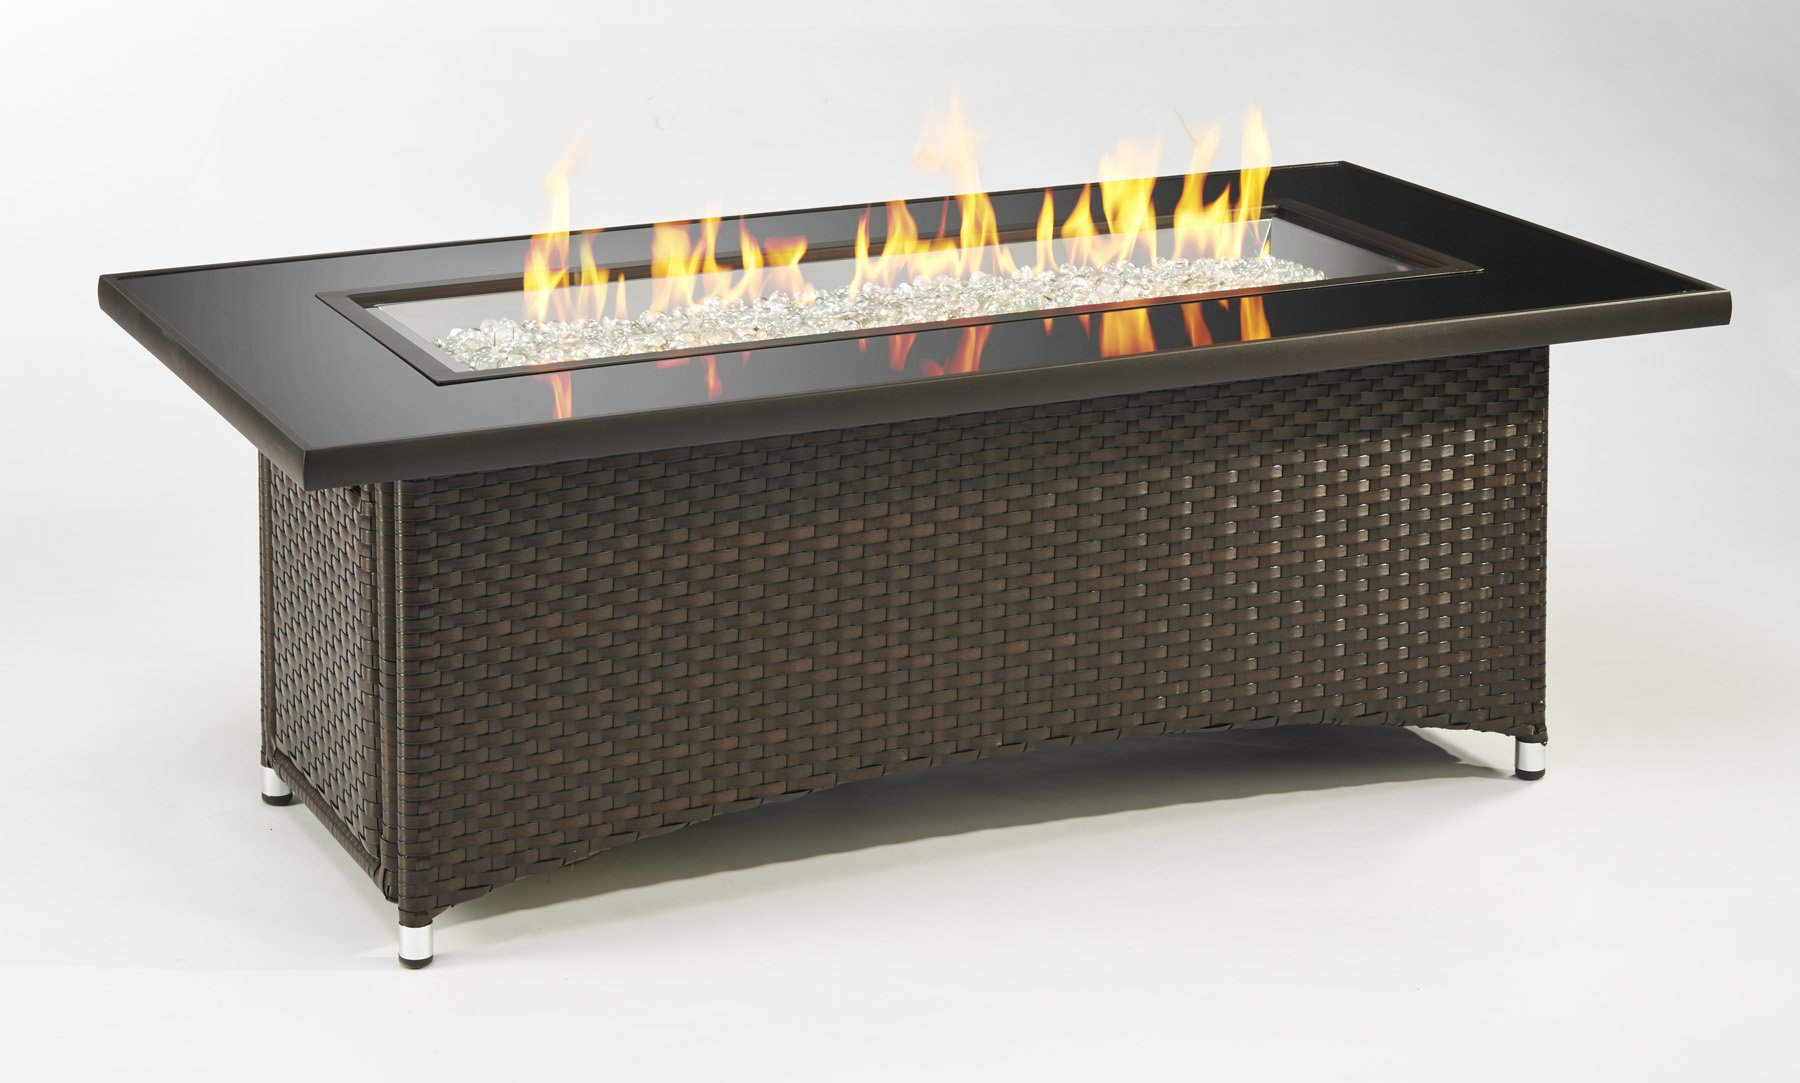 Montego, granite, dining table, promotion, sale, fire pit, firepit, fire table,  firetable, Outdoor Greatroom Company